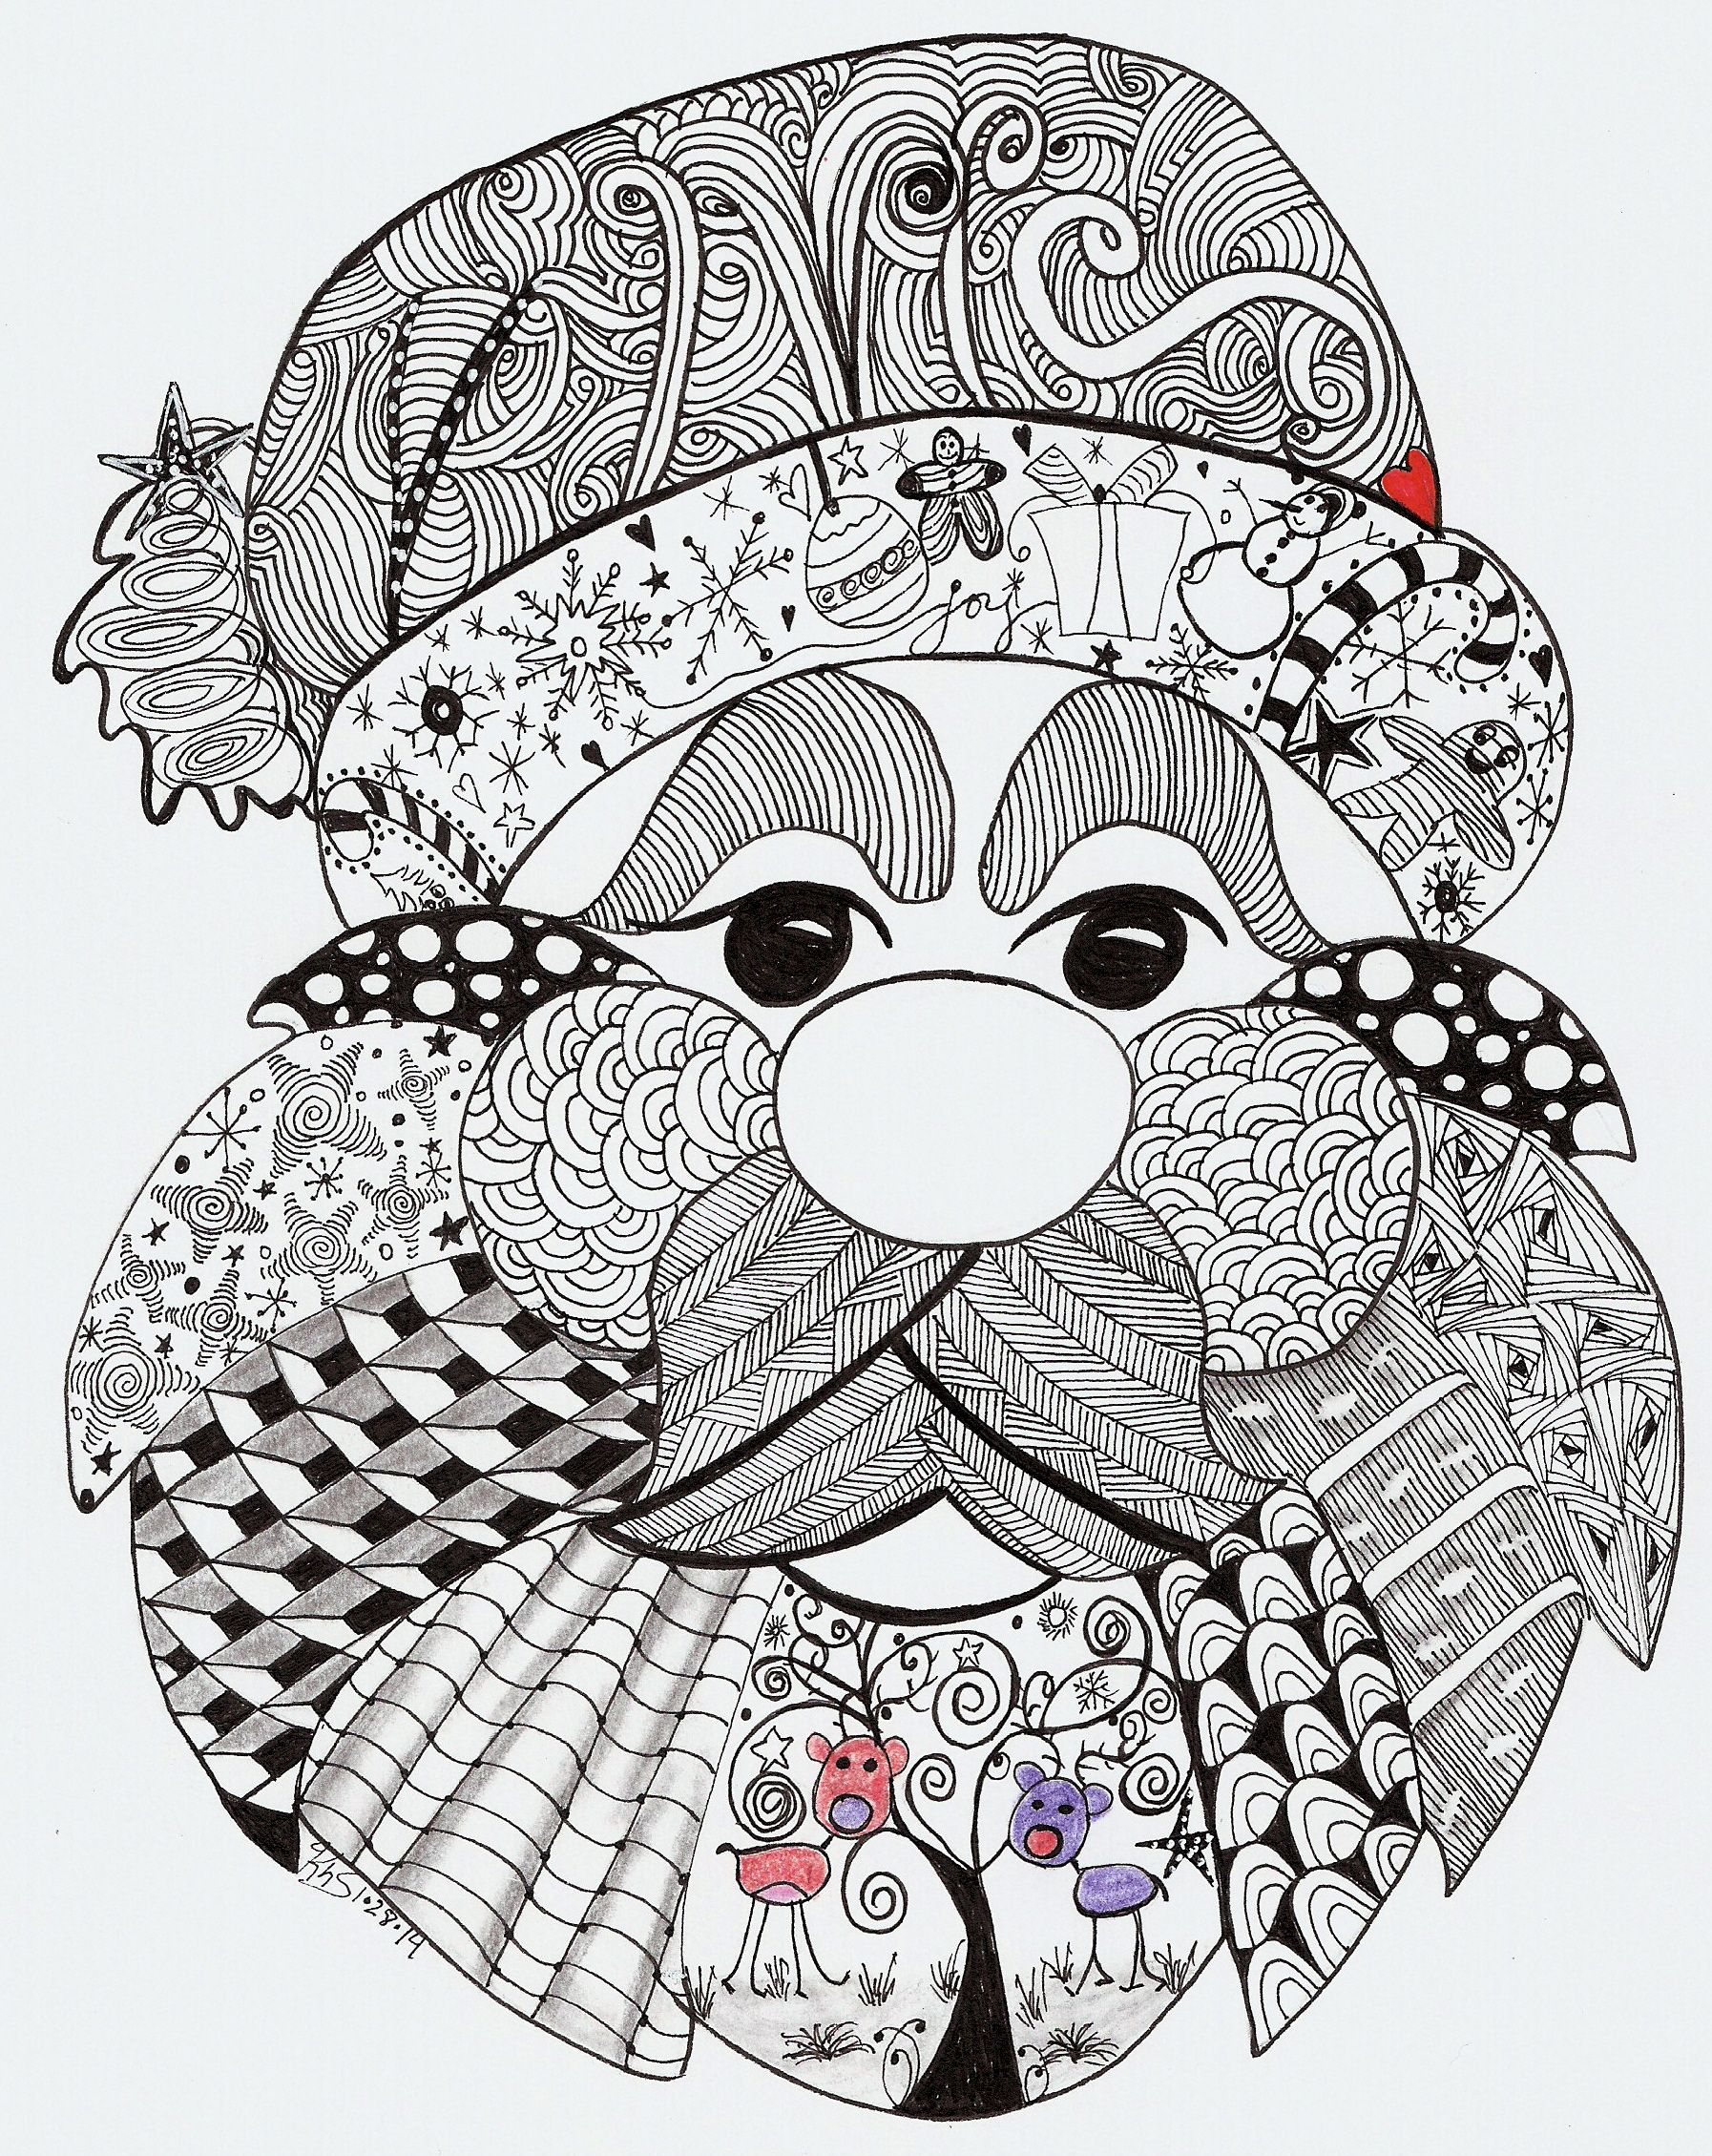 Kathleens Art Creations Home Page Zentangle Patterns Christmas Doodles Christmas Note Cards